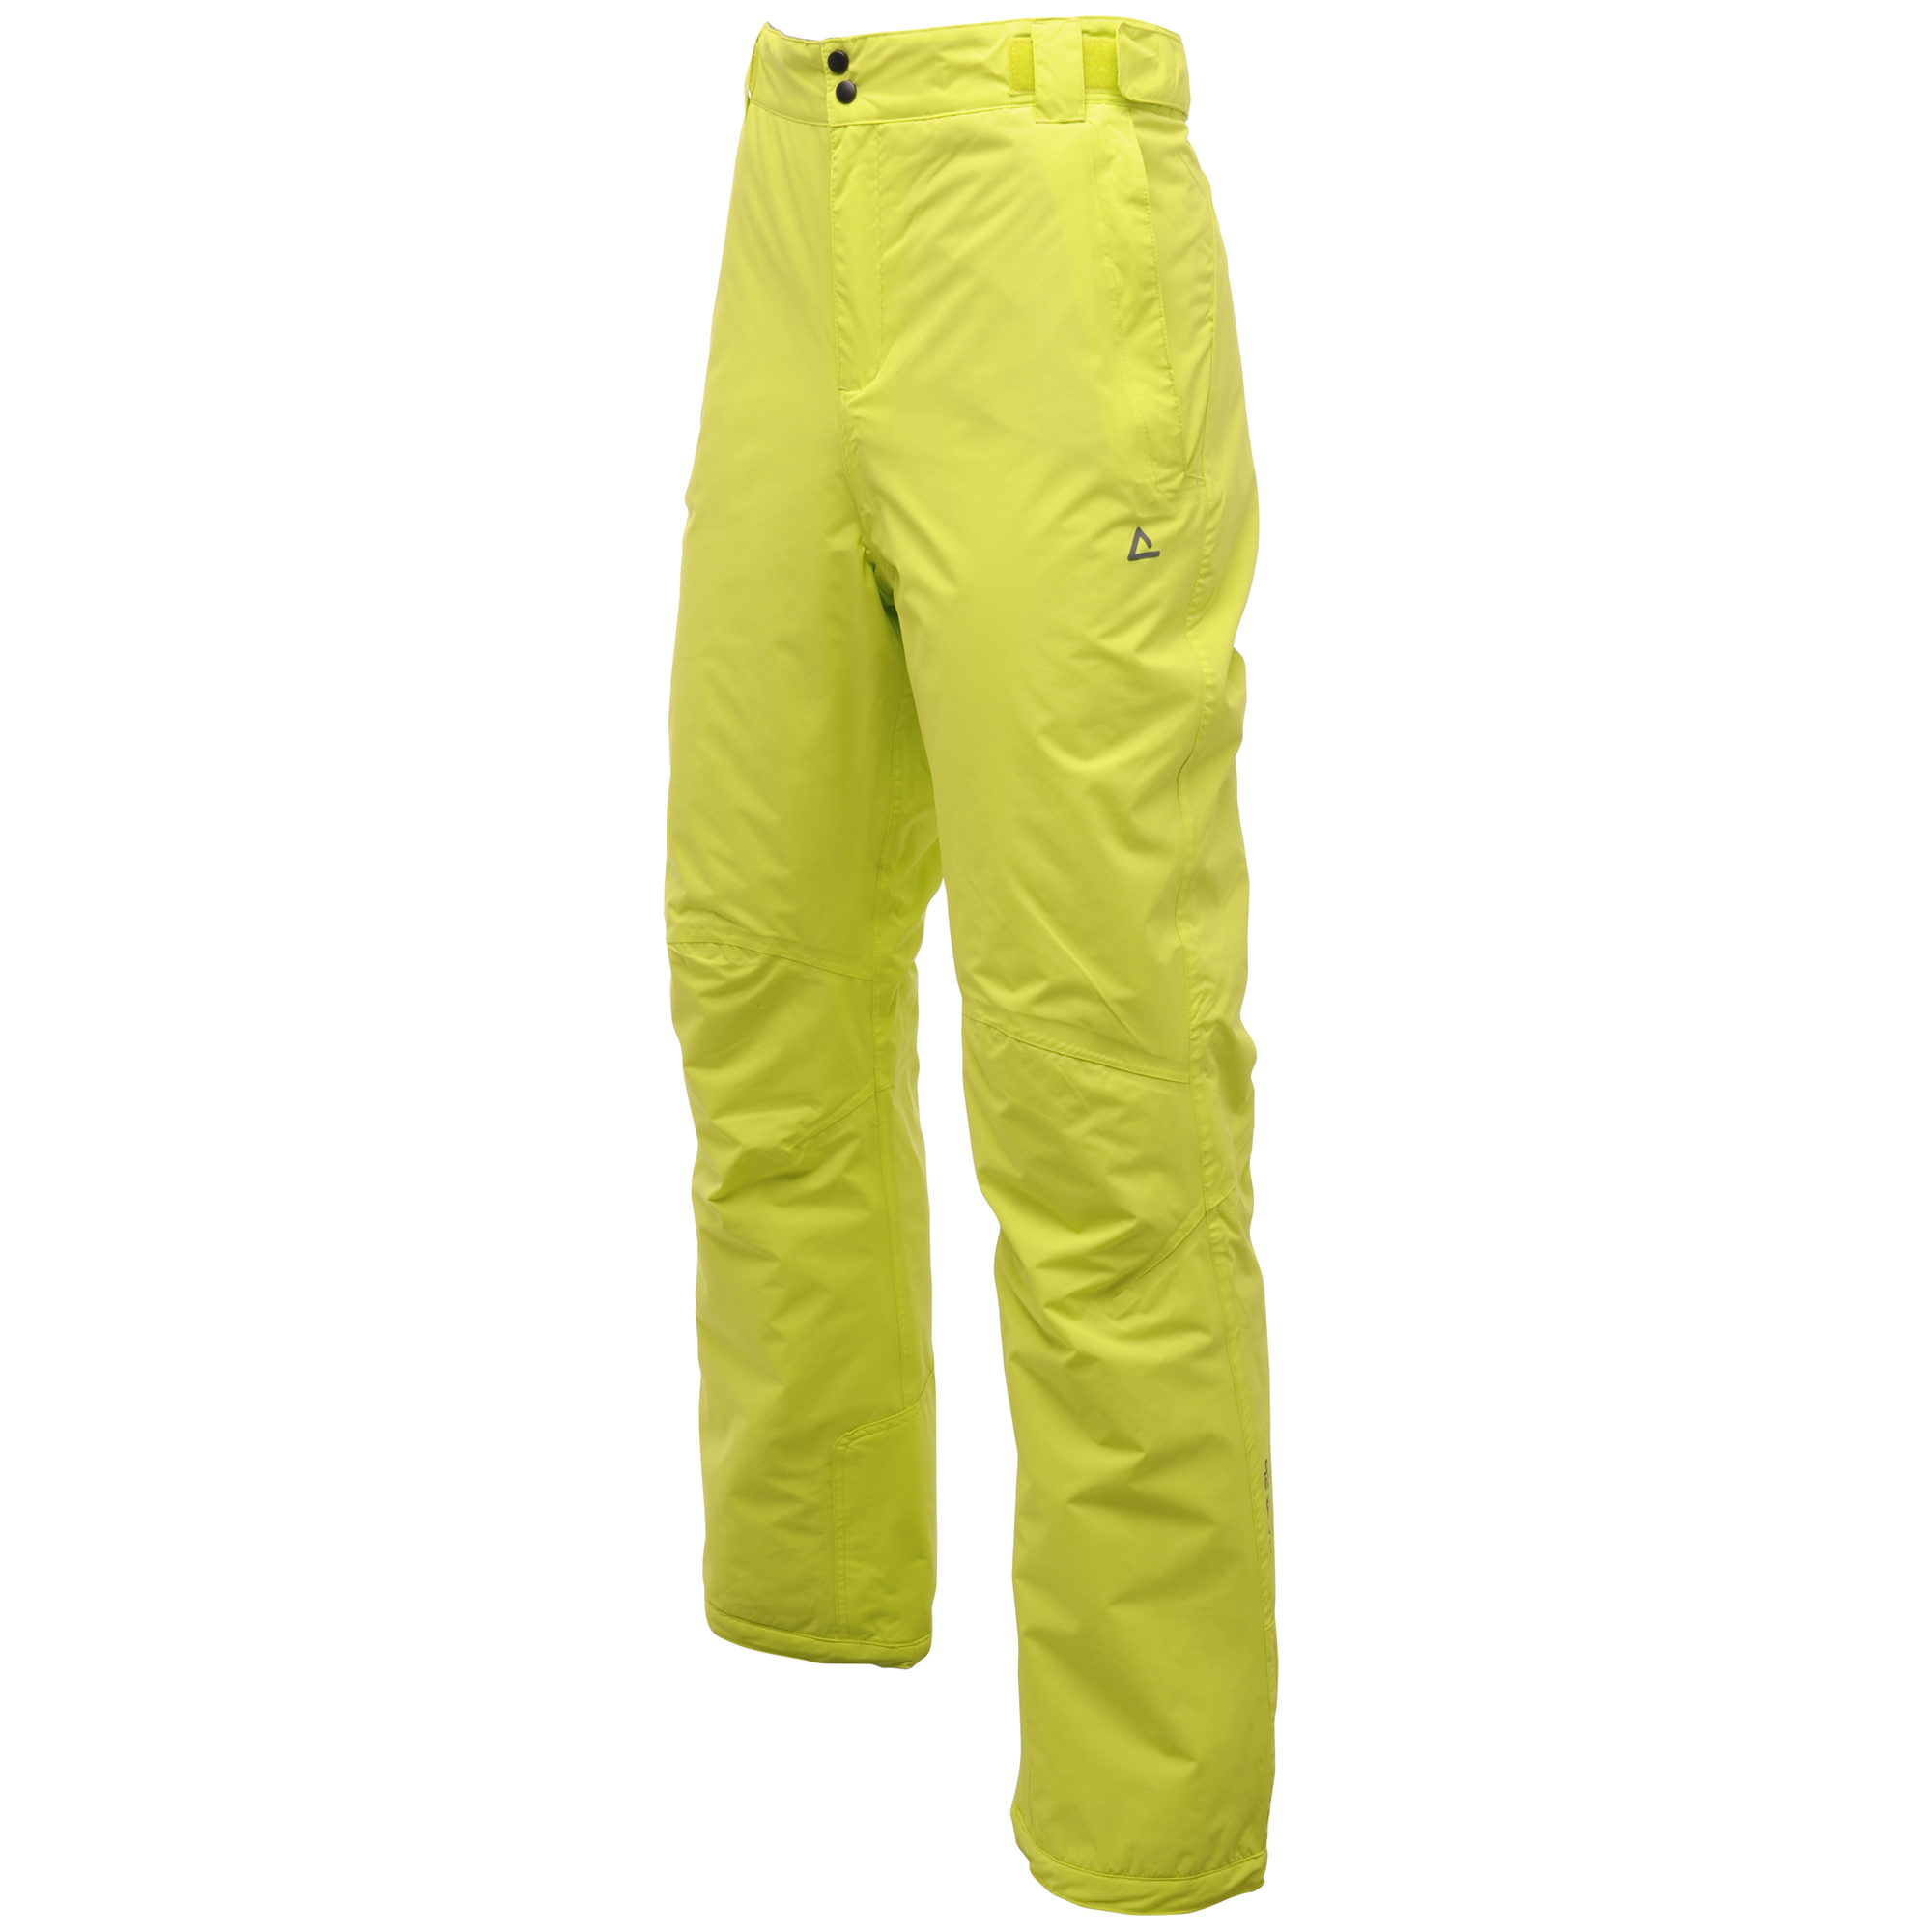 Dare2b Dive Down Men's Ski Pants - Lime Punch